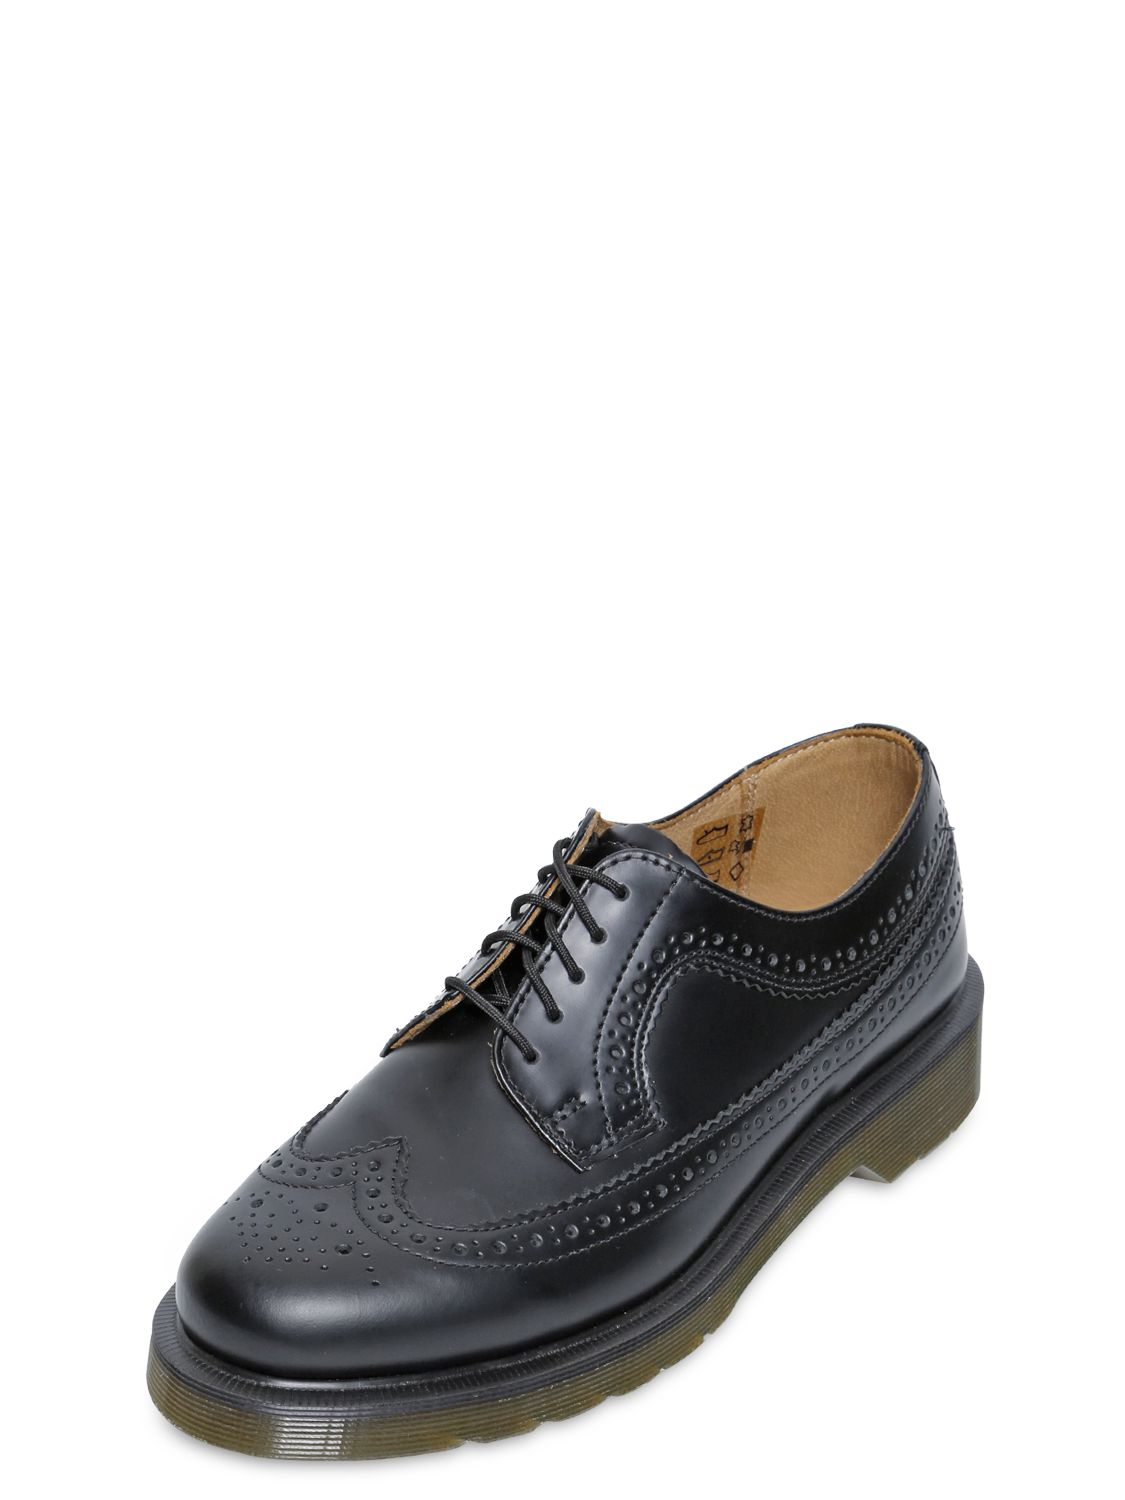 Lyst Dr Martens 3989 Brogue Leather Derby Lace Up Shoes